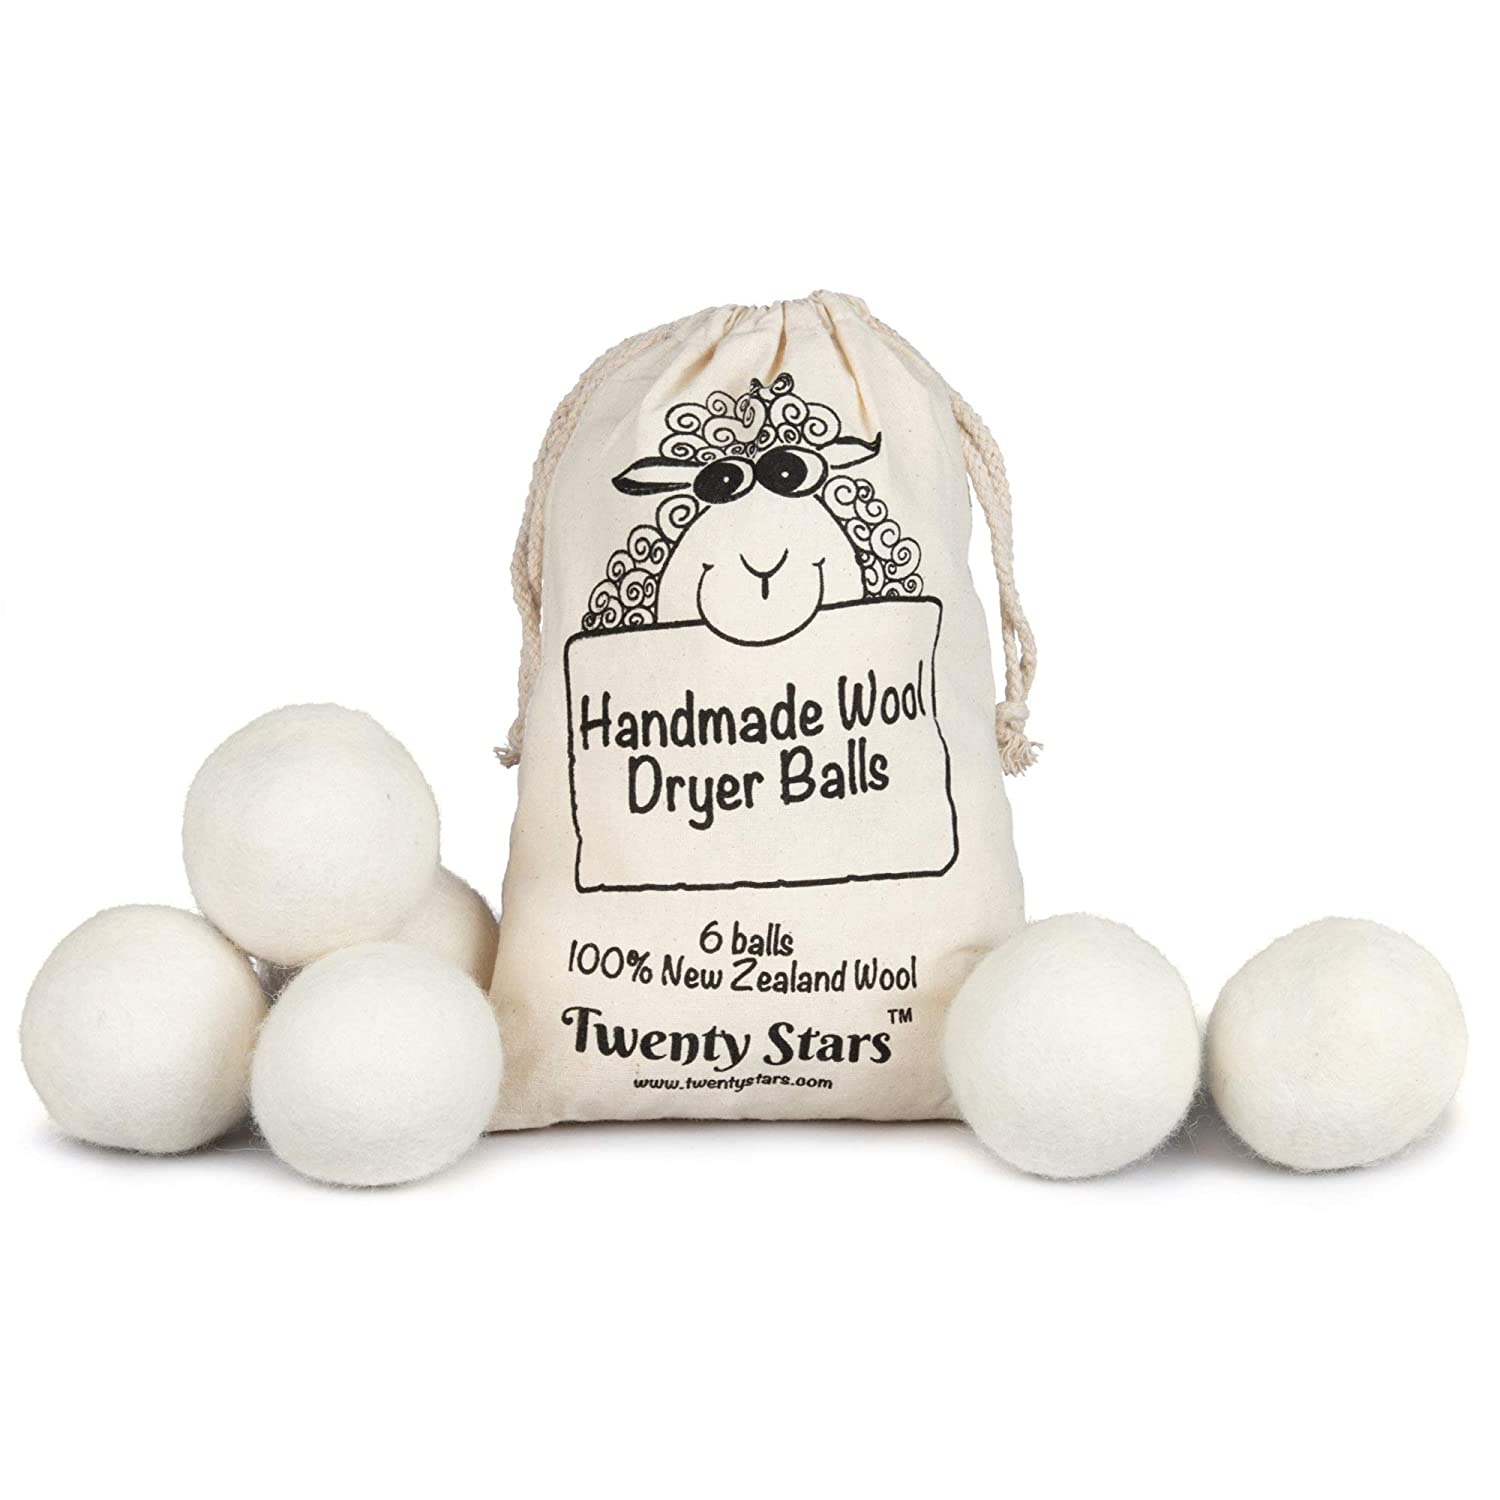 Image 2 of Wool Dryer Balls, Pack of 6